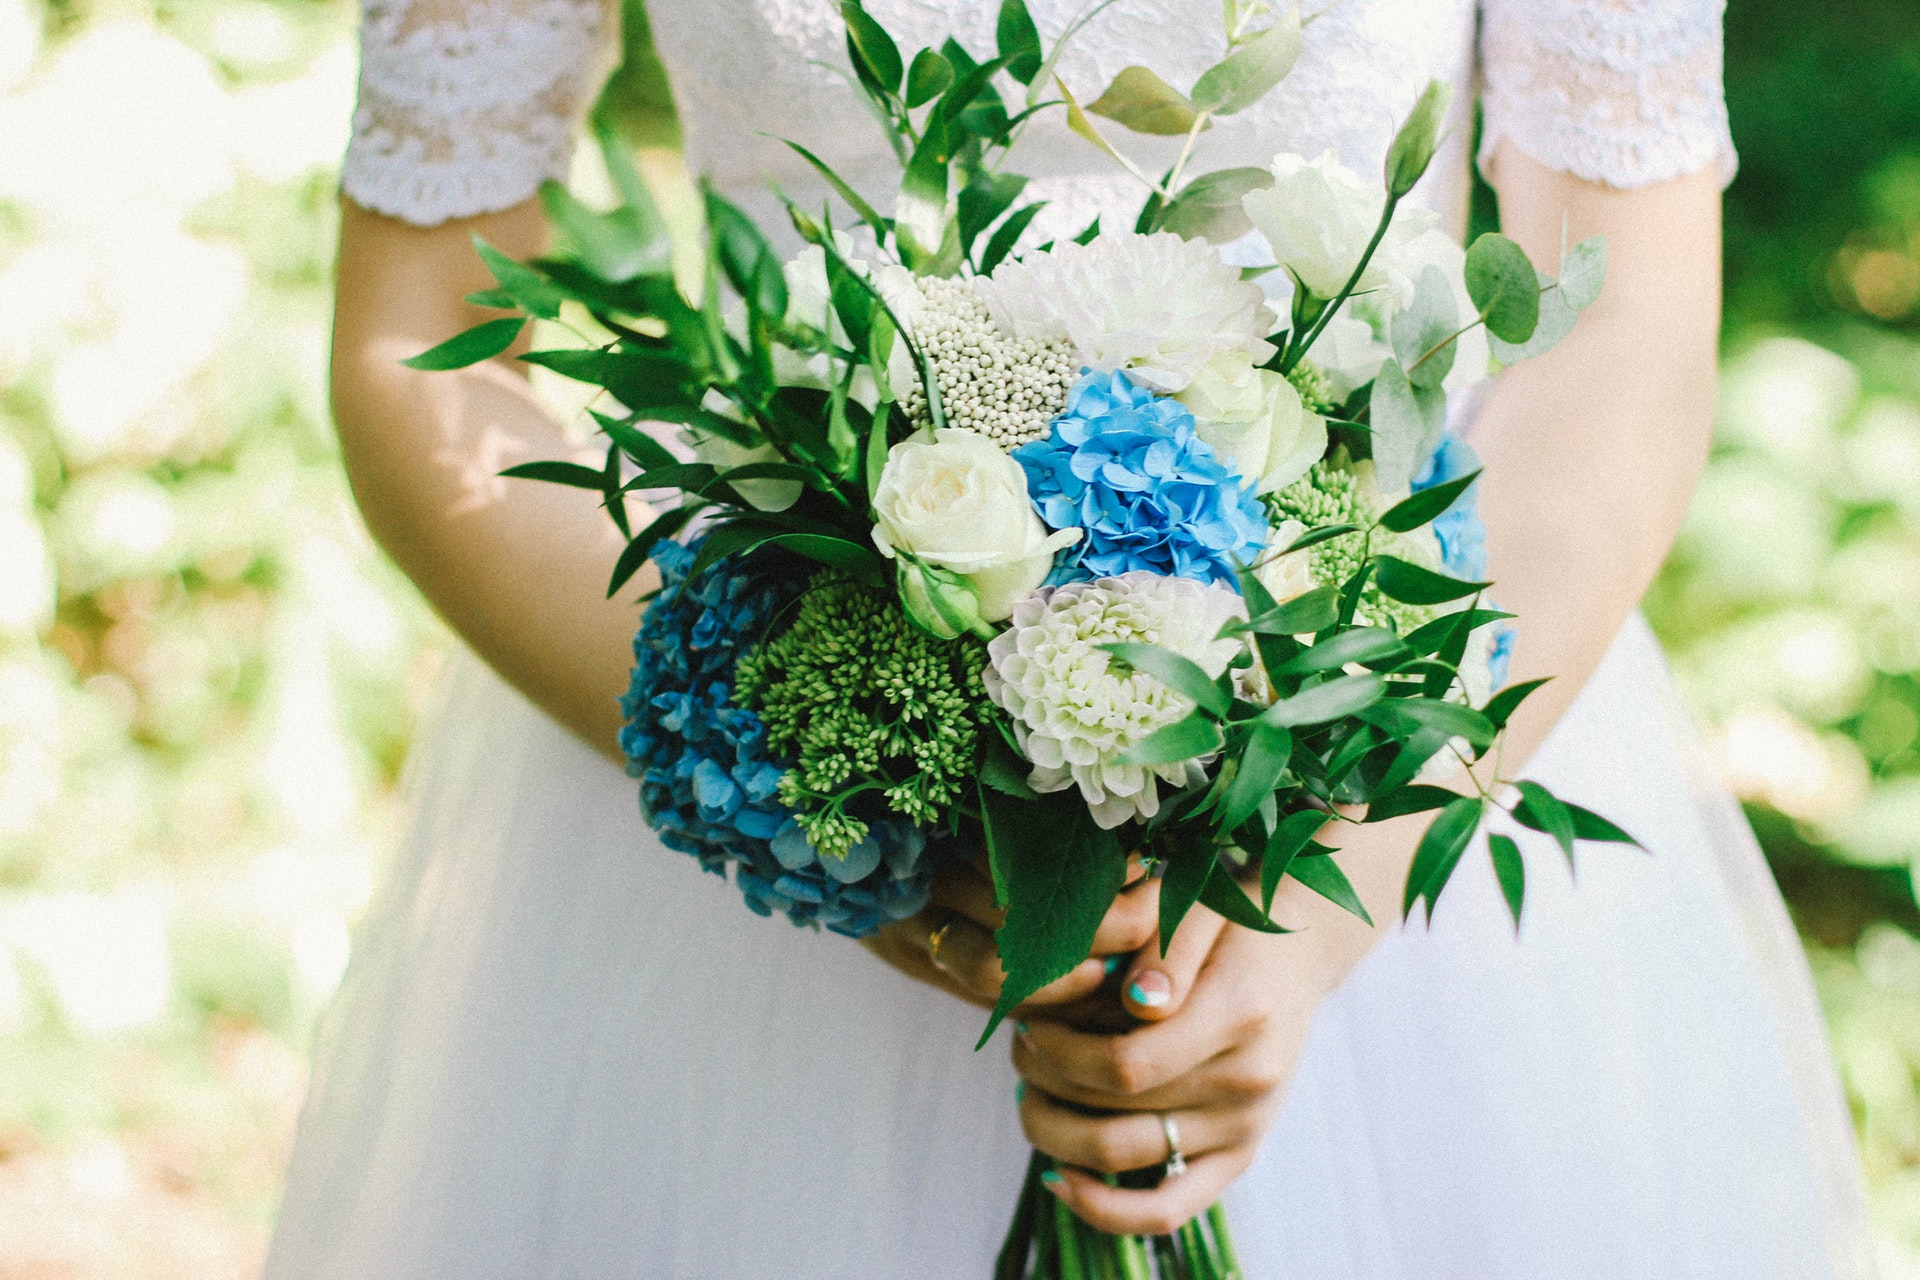 beautiful-blur-bouquet-566450.jpg